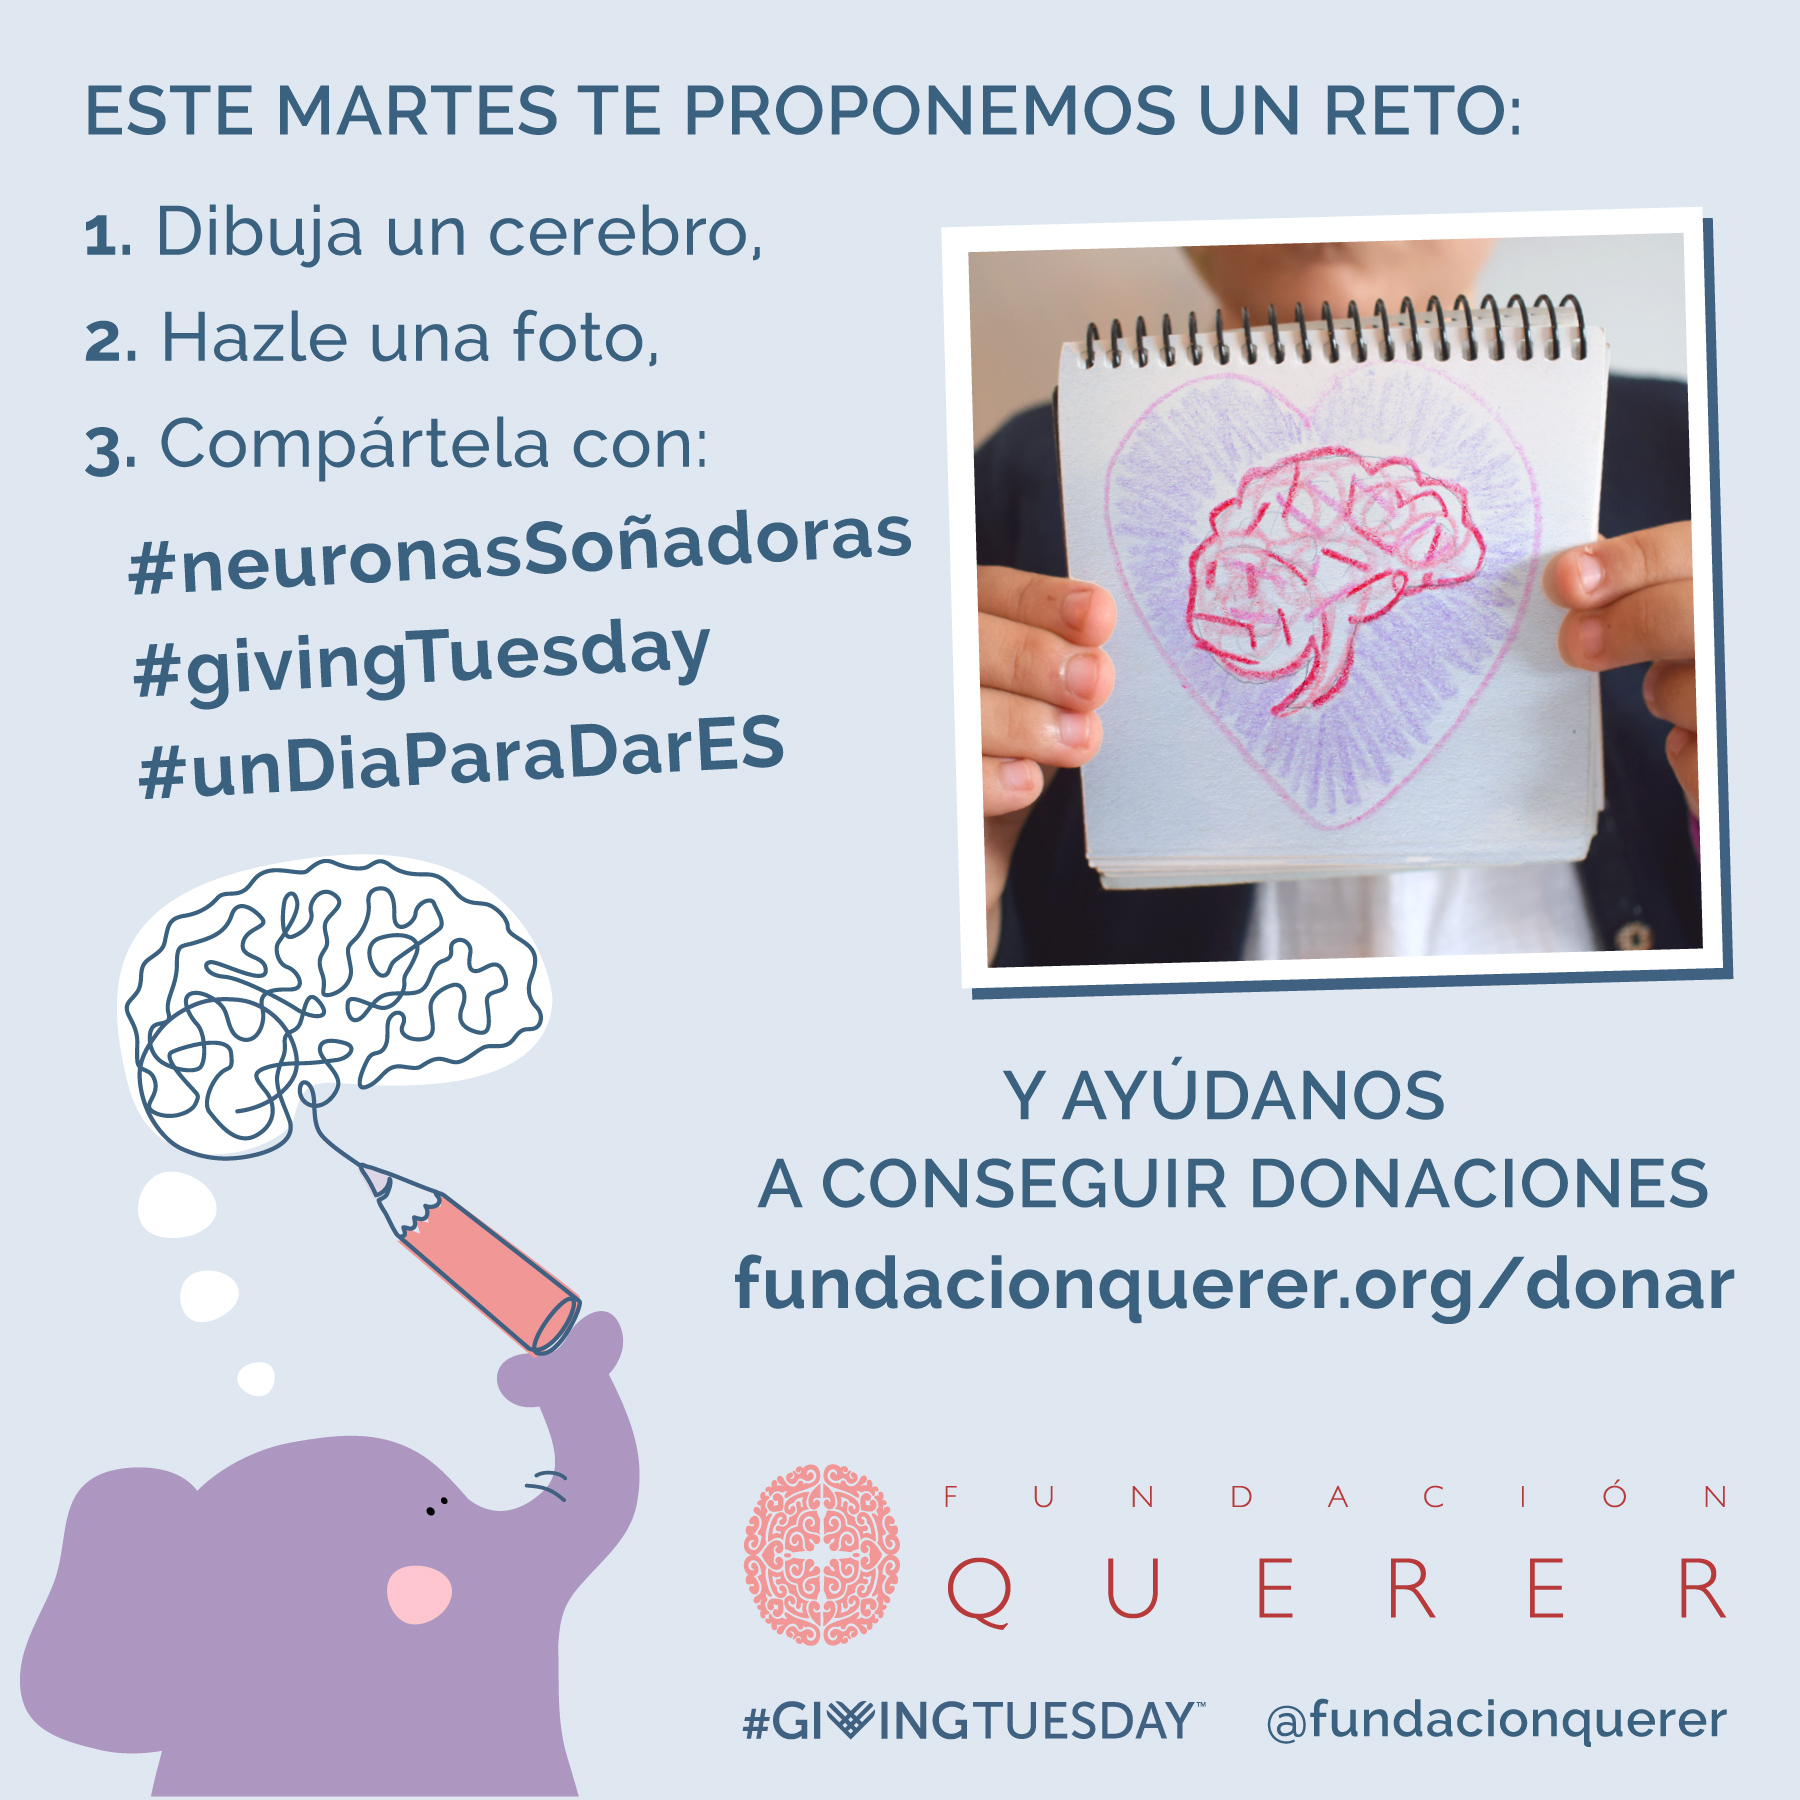 givingtuesday-FQ-reto